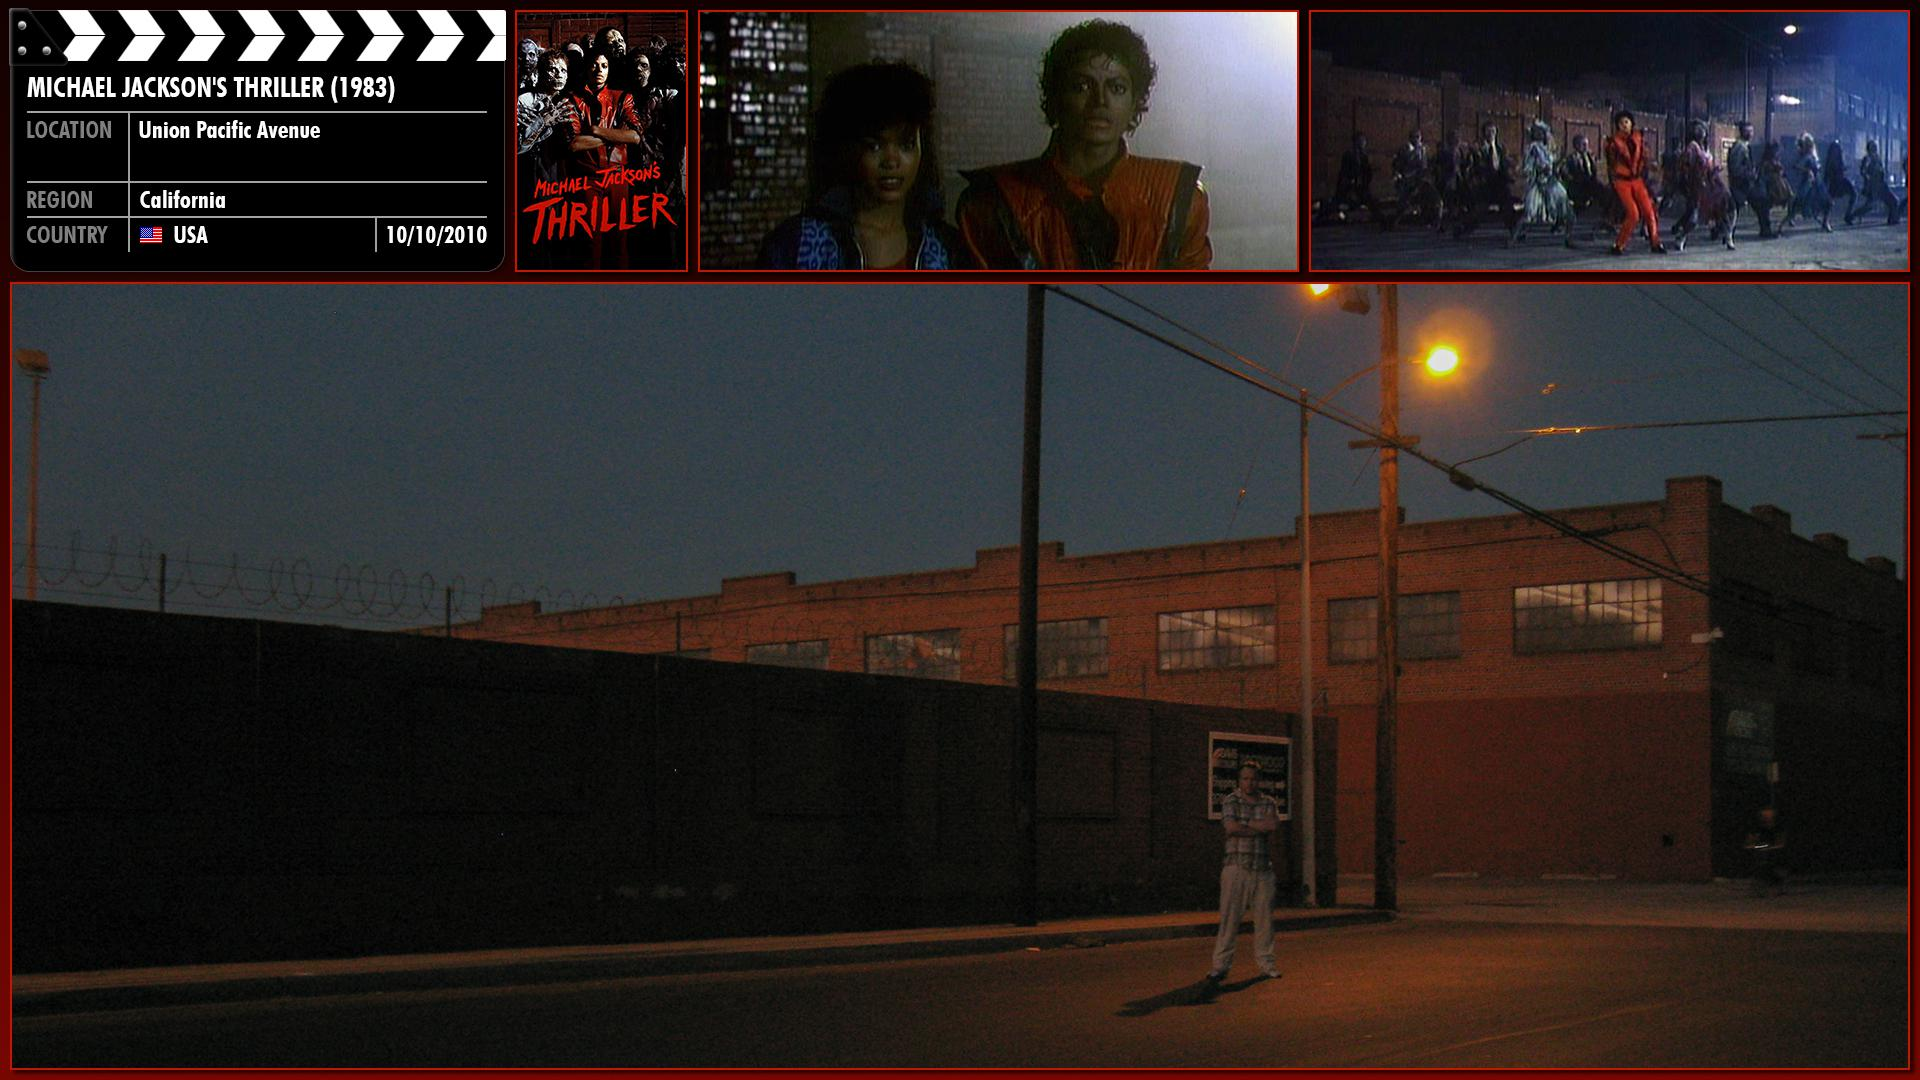 Filming location photo for Michael Jackson's Thriller (1983) 3 of 3